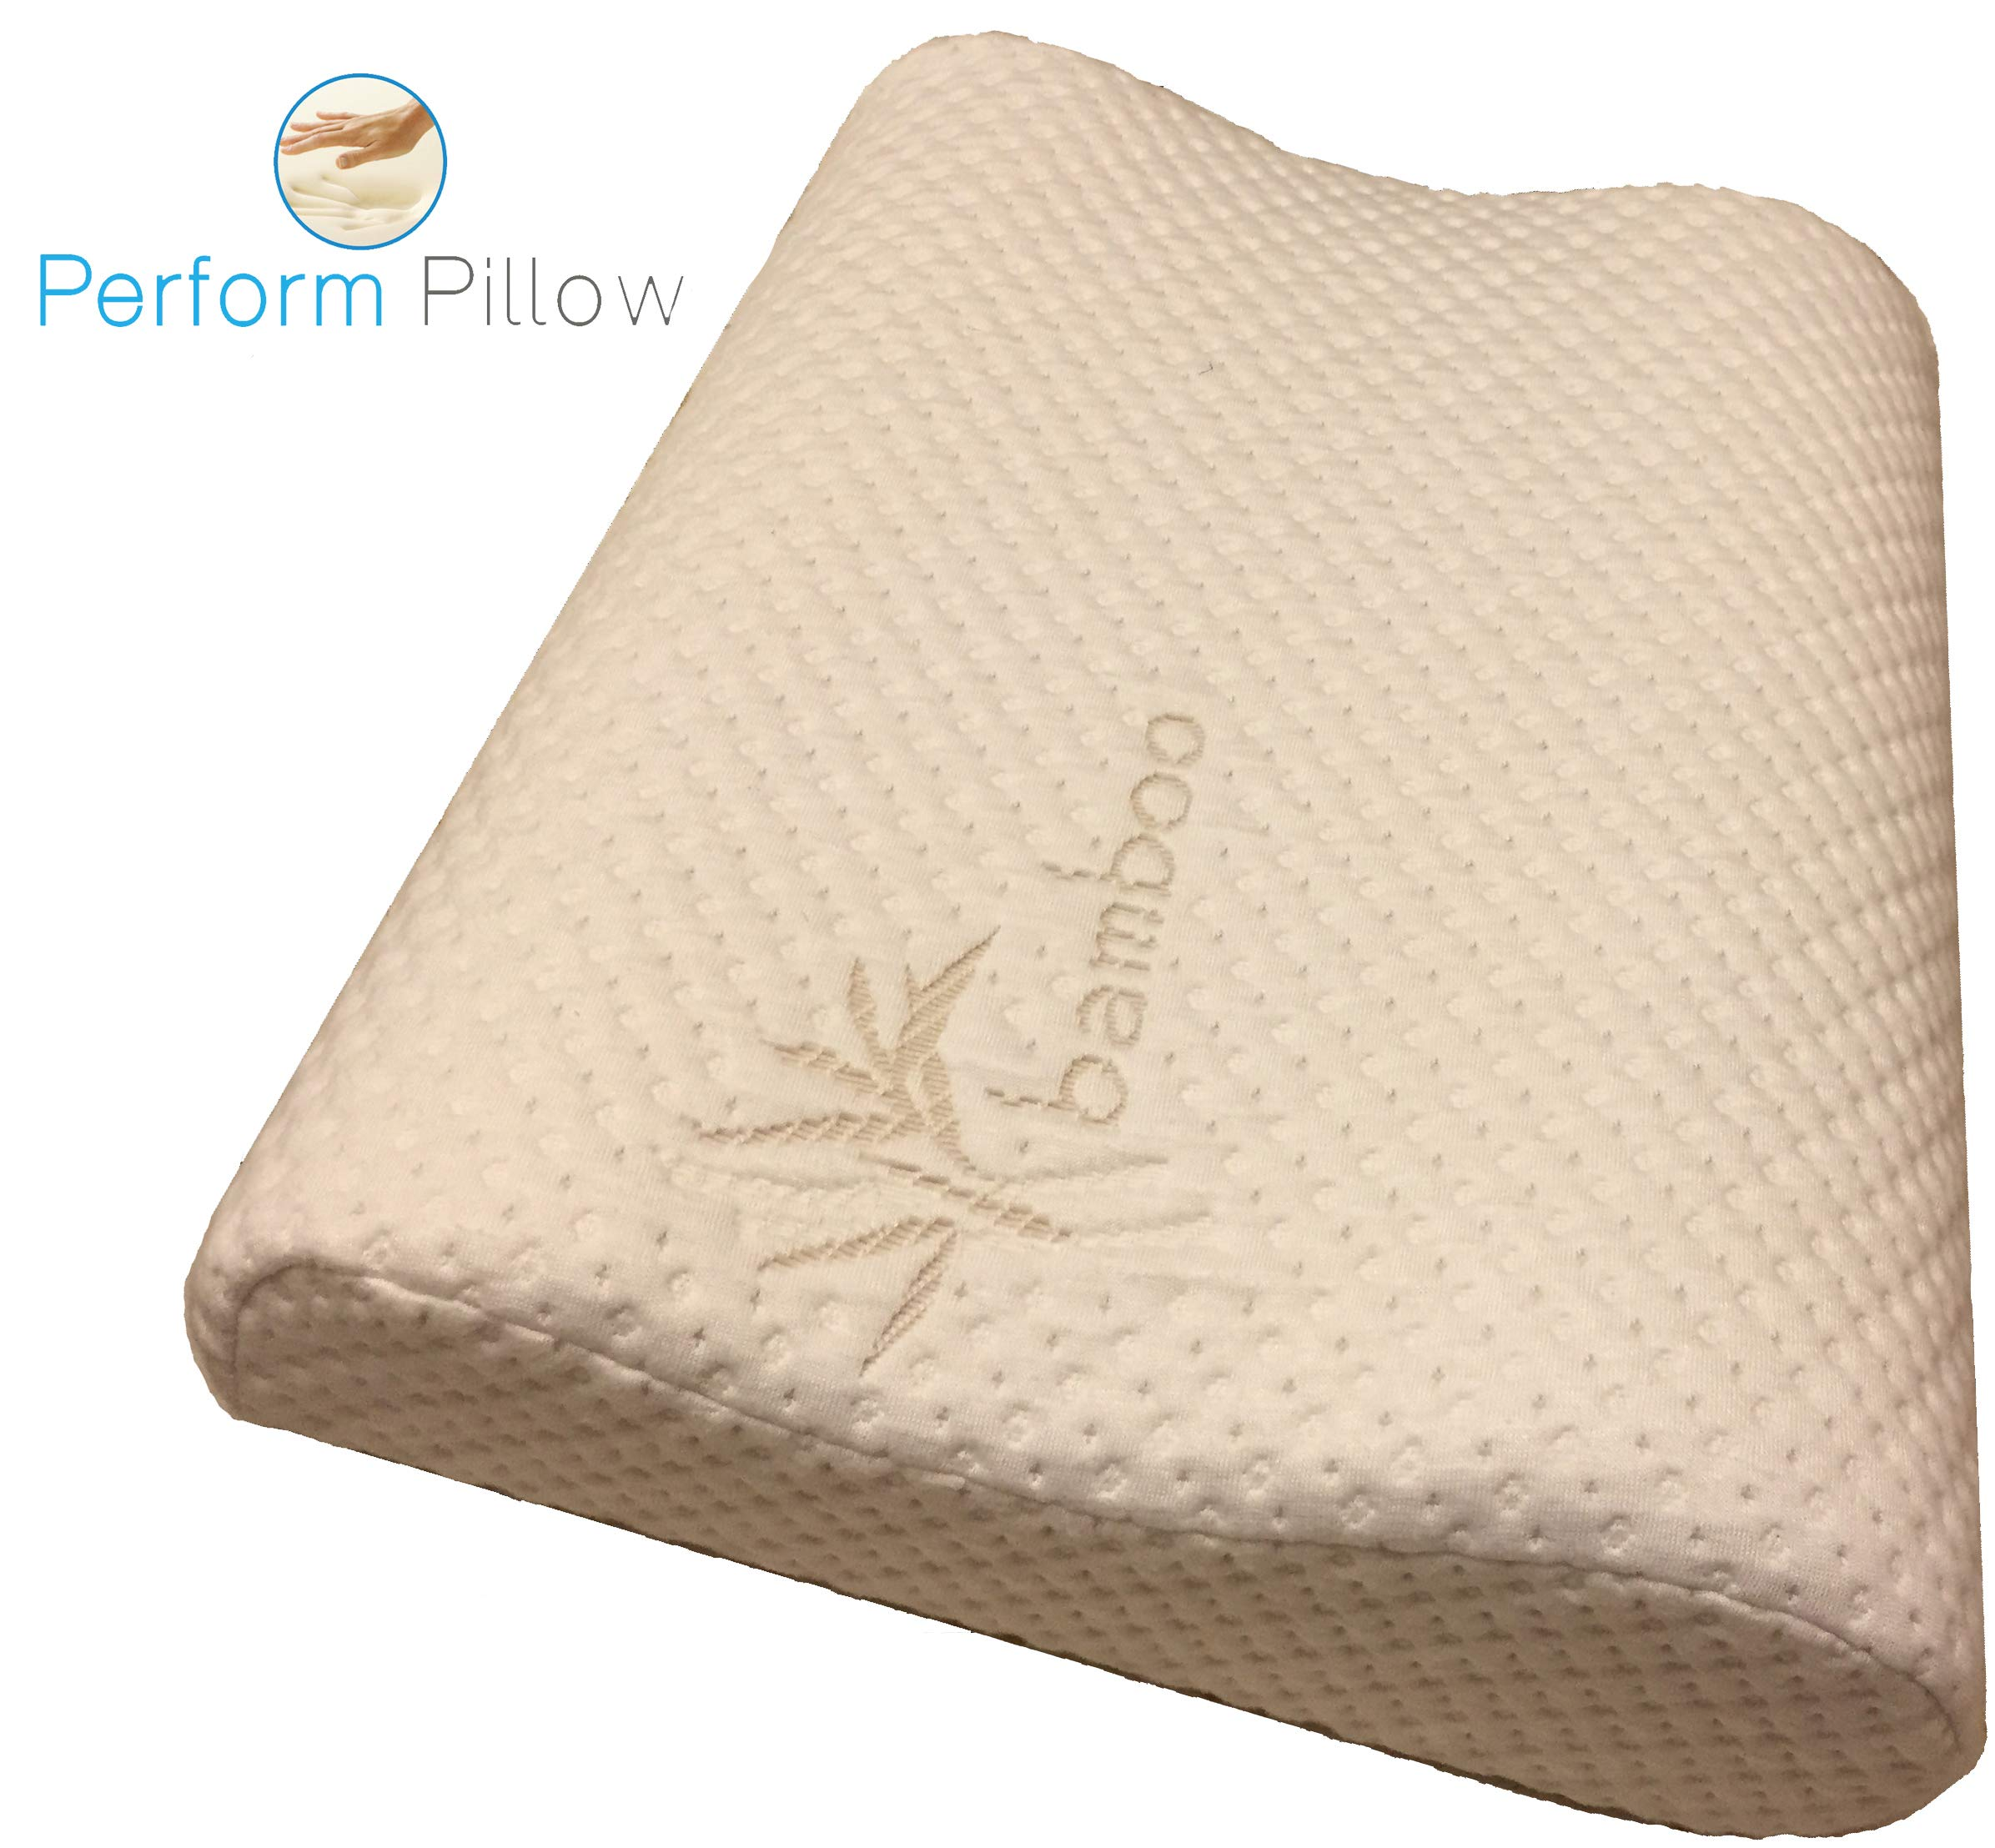 Medium Profile Memory Foam Neck Pillow - Double Contour - Chiropractor Approved - Washable Soft Bamboo Cover - Great for Neck Pain, Sleeping (Medium)